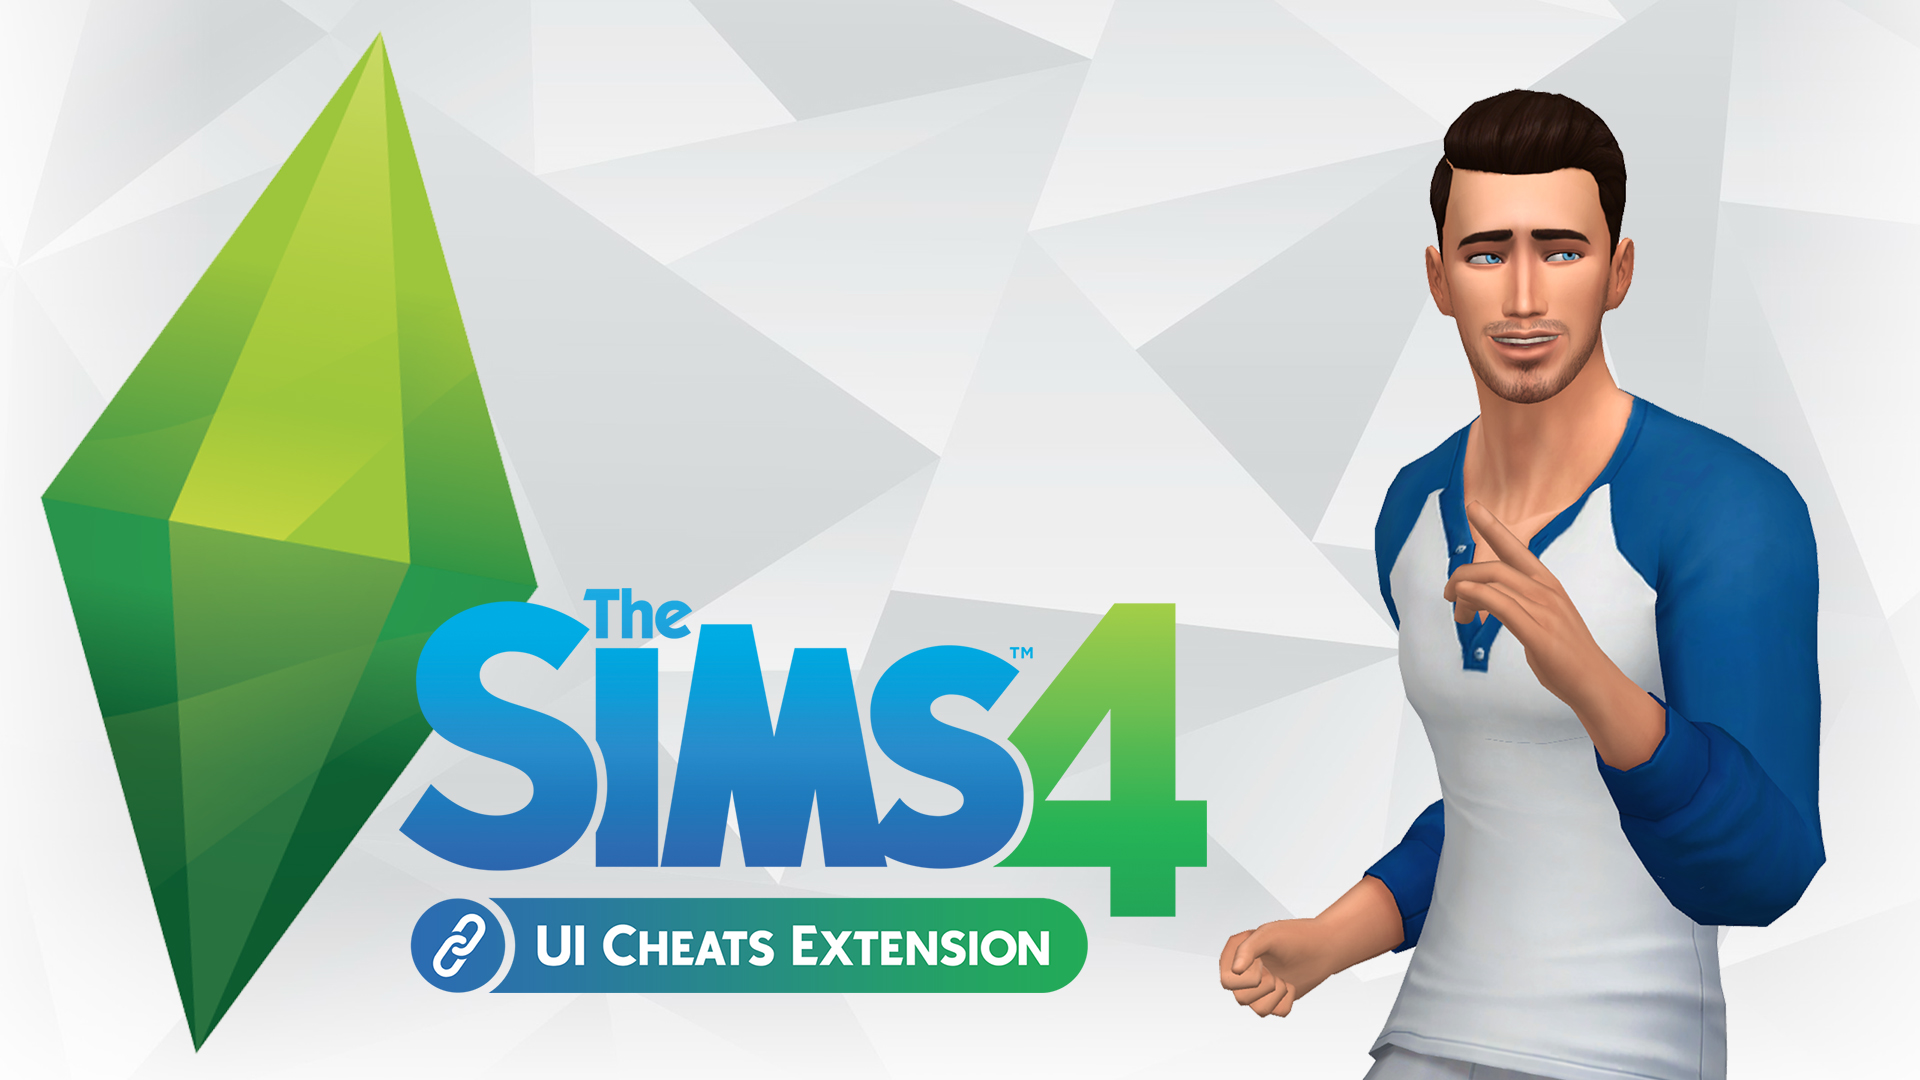 Mod The Sims - UI Cheats Extension v1.15.1 for Legacy Edition